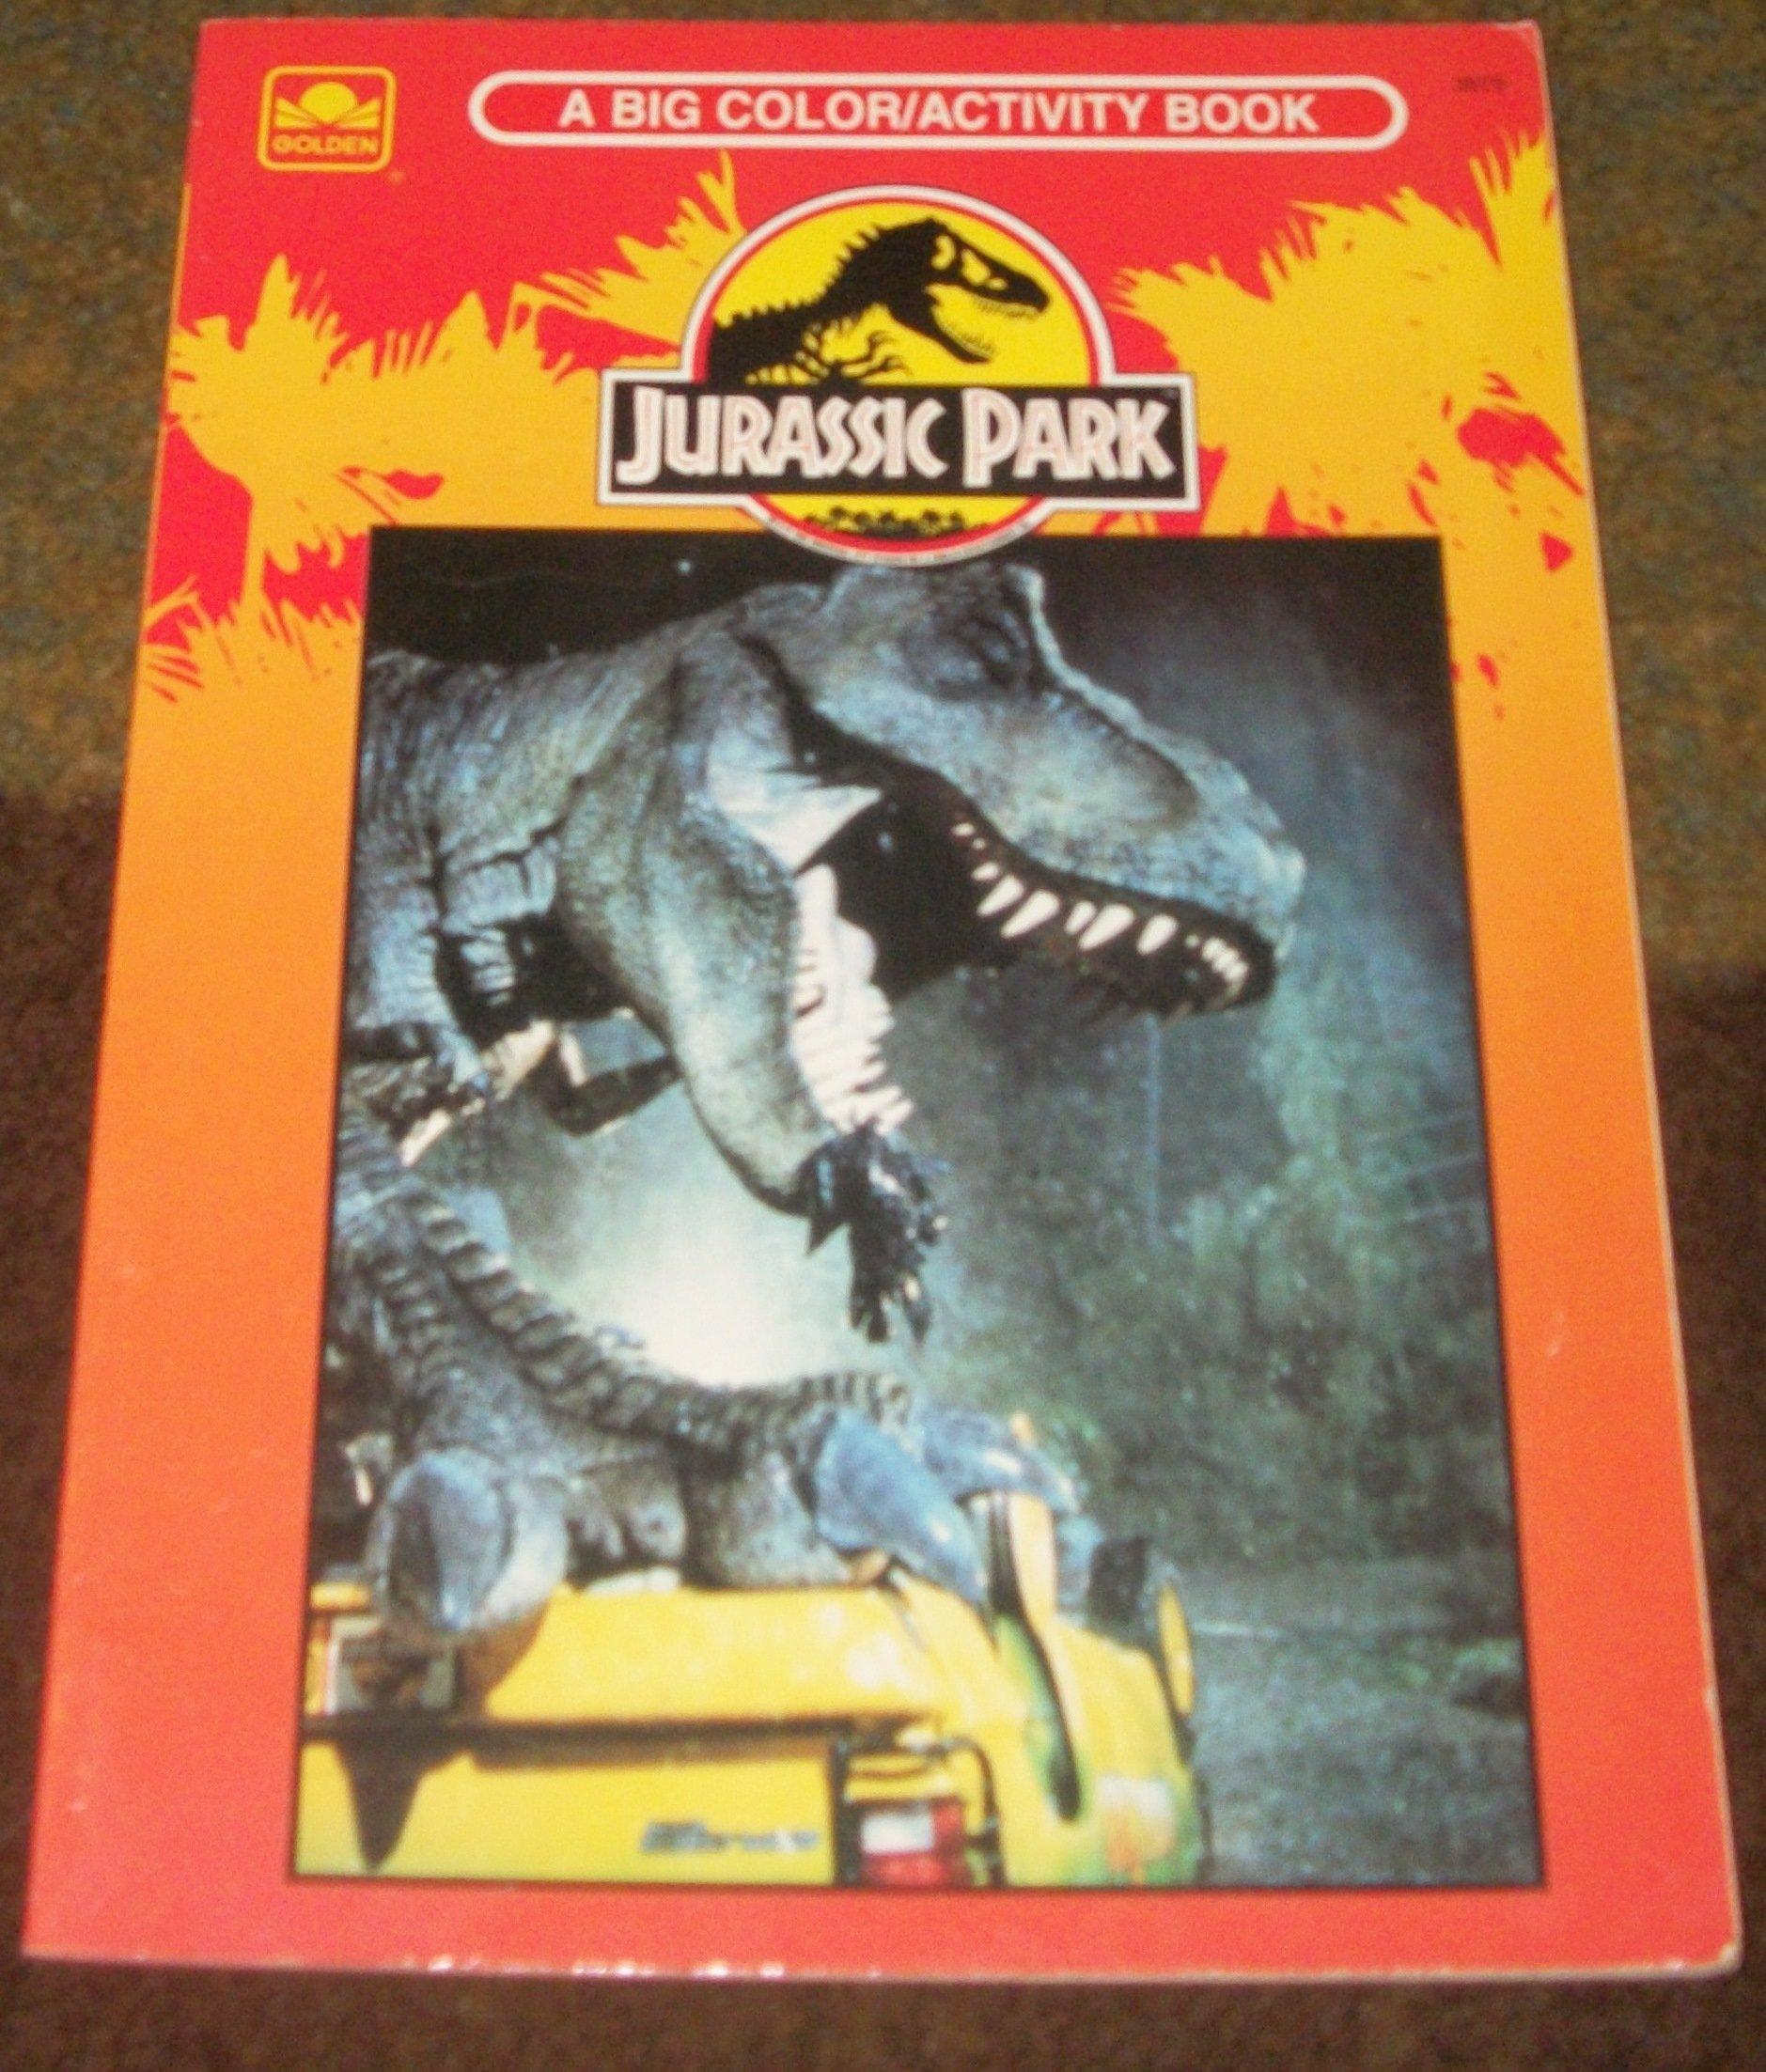 Colouring in jurassic park - Jurassic Park A Big Color Activity Book